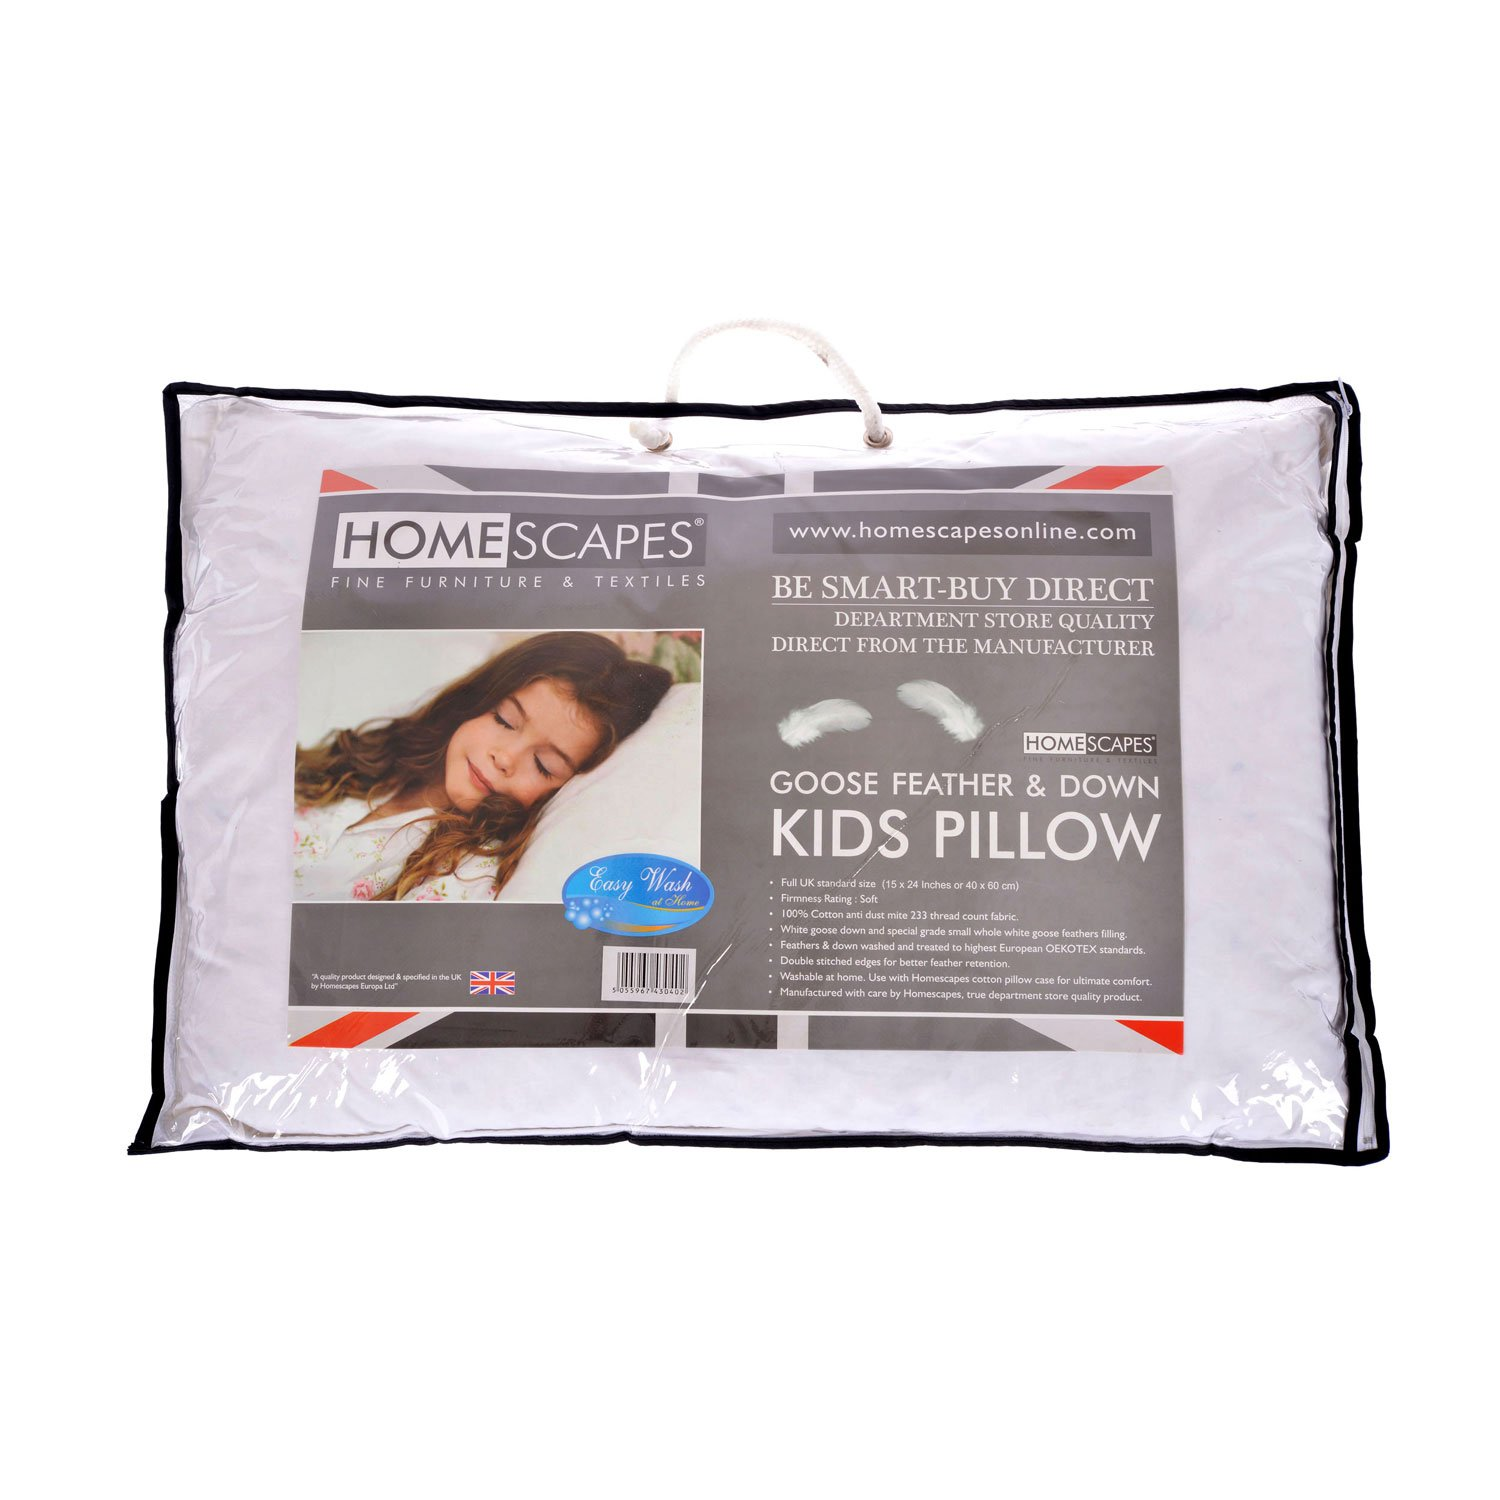 HOMESCAPES Kids Pillow 40 x 60cm - Goose Feather Down Filling - 100% Cotton Fabric Washable Anti Dust Mite - Firmness Soft/Medium - RDS Certified.